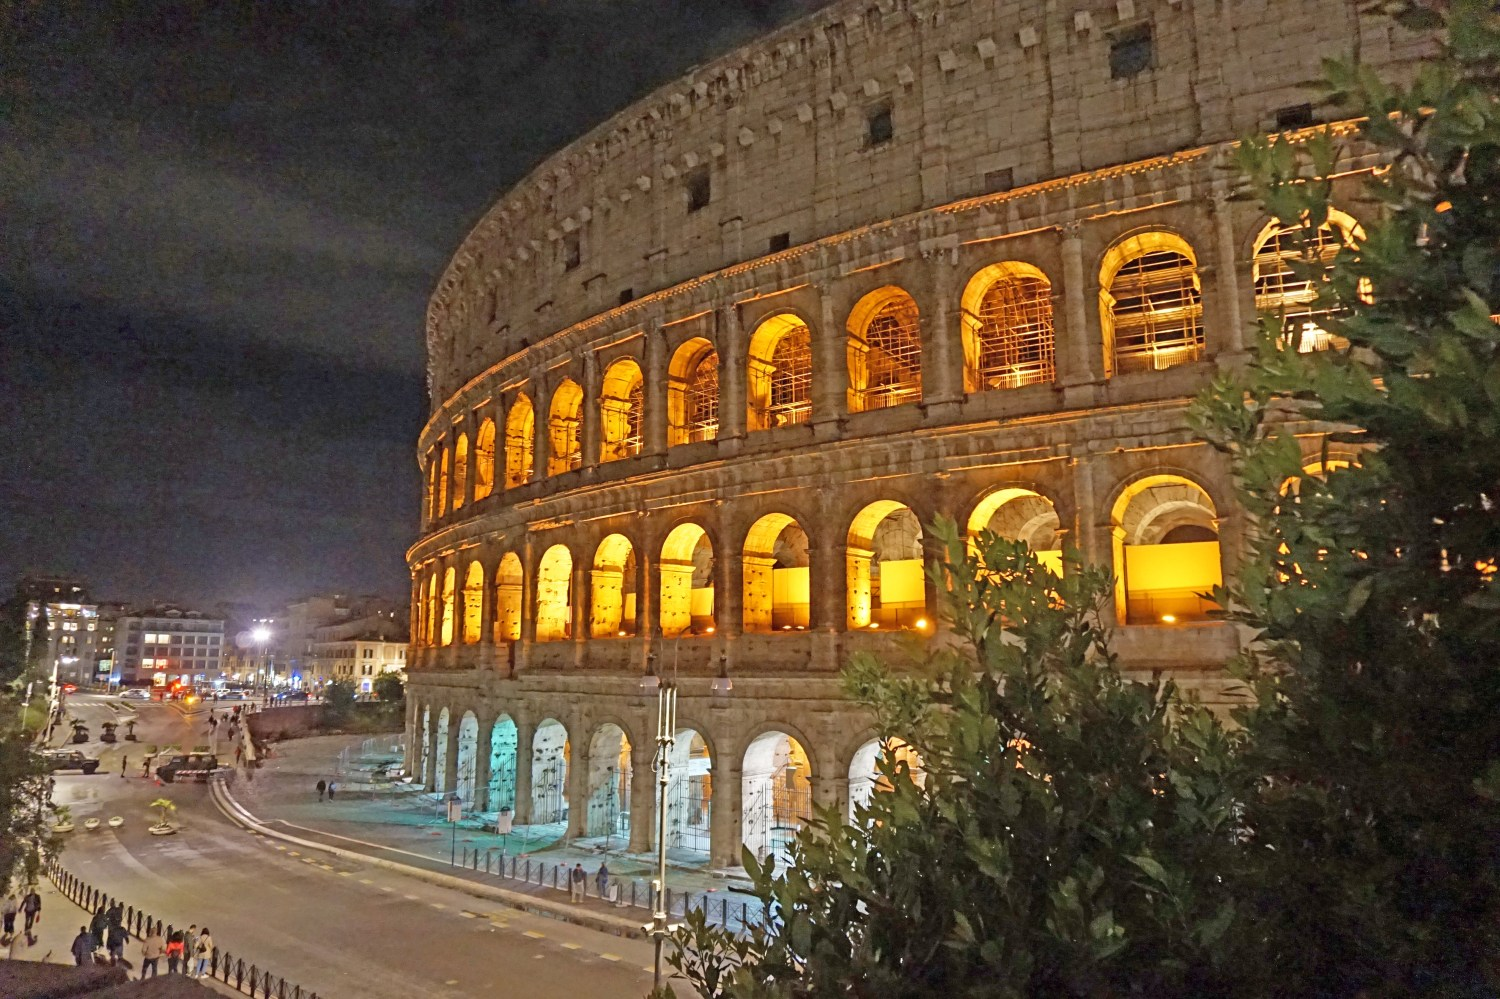 Most famous Italy attraction - the Colosseum.